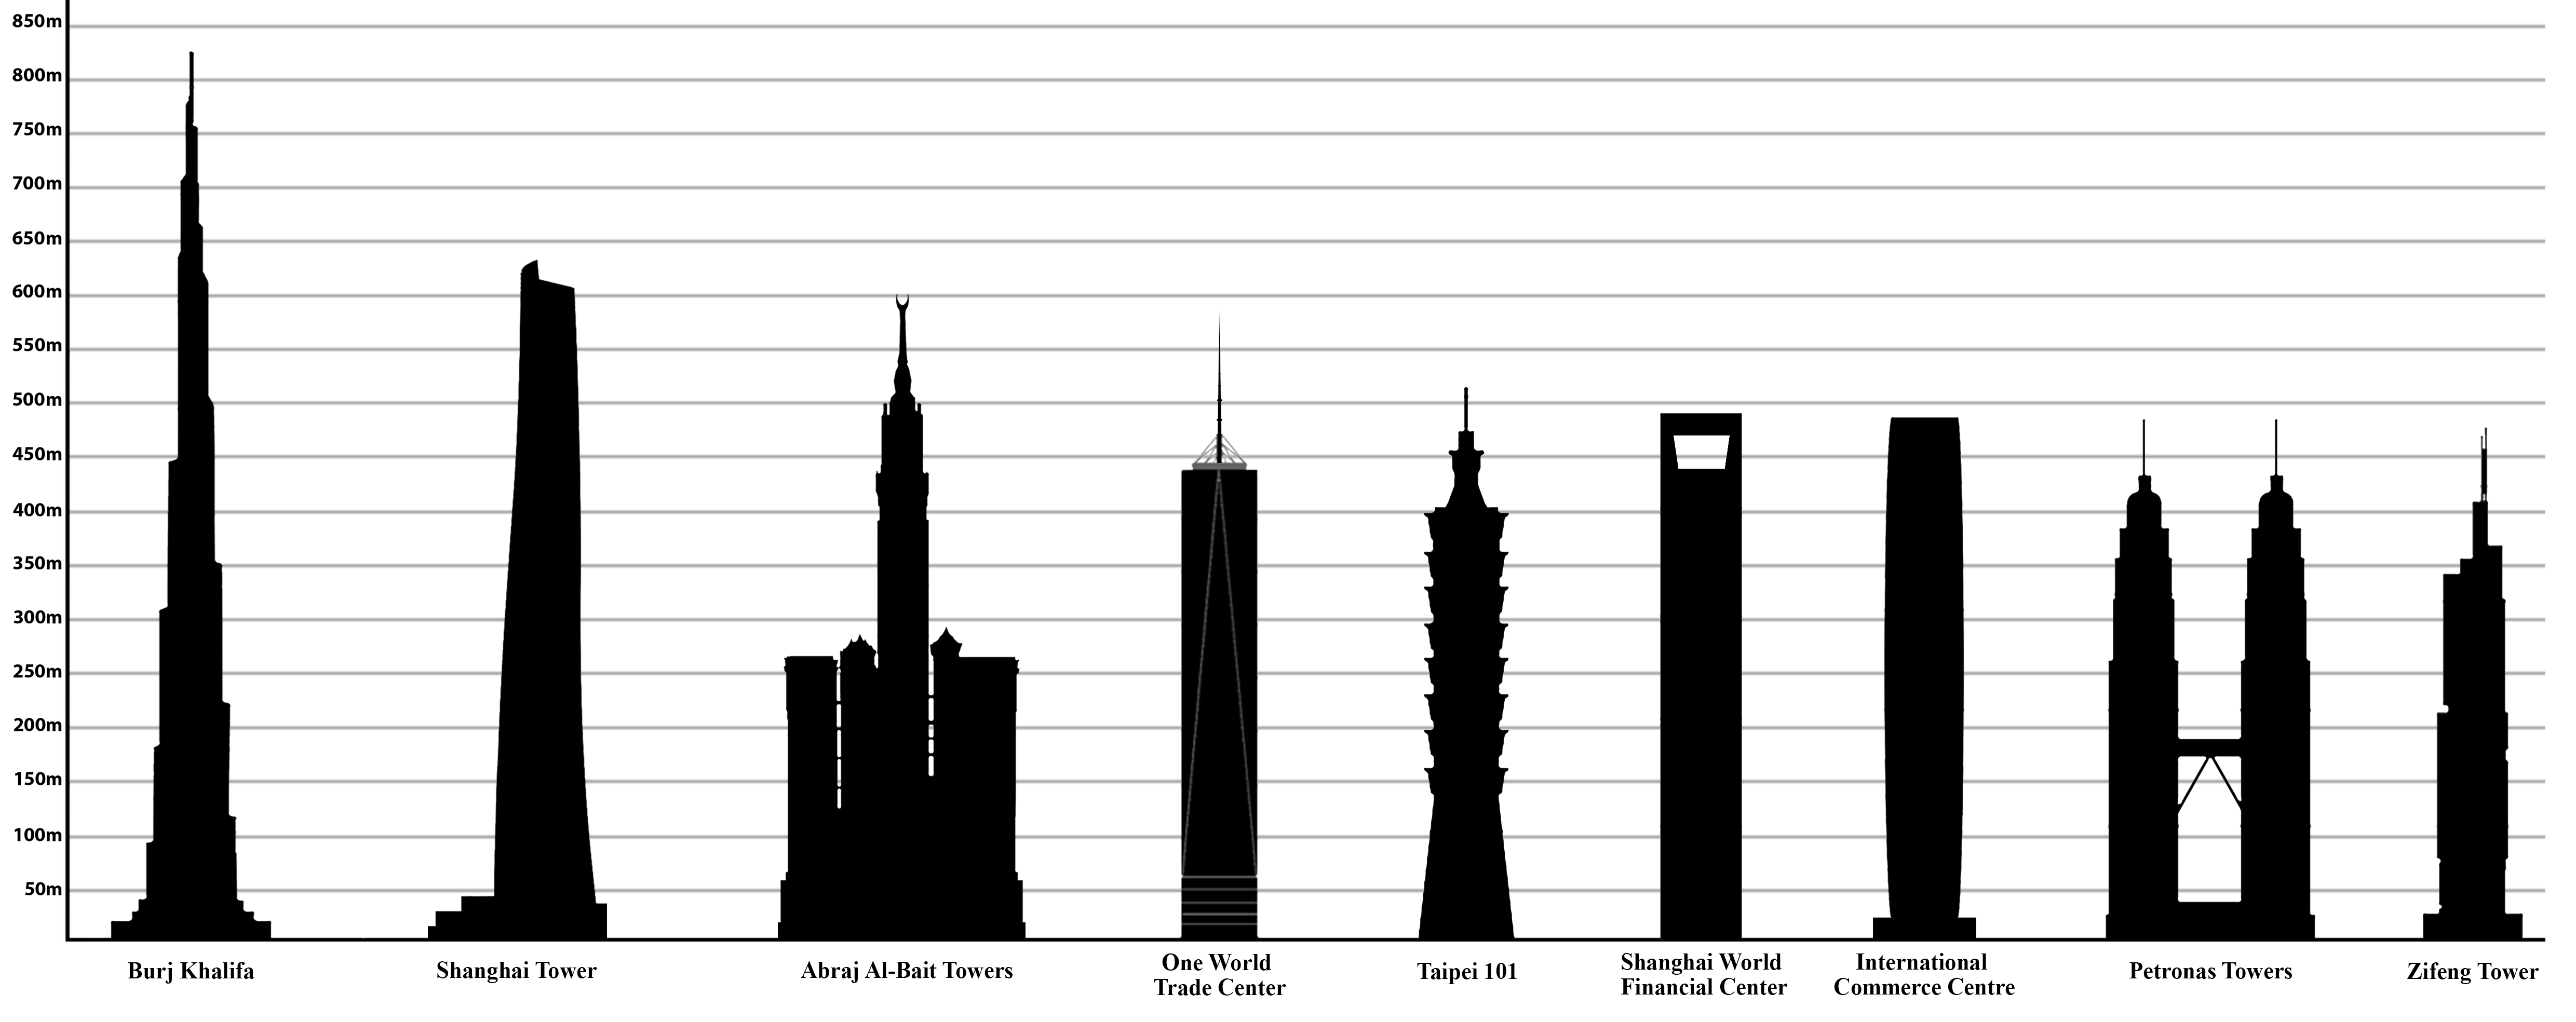 The tallest buildings in 2015